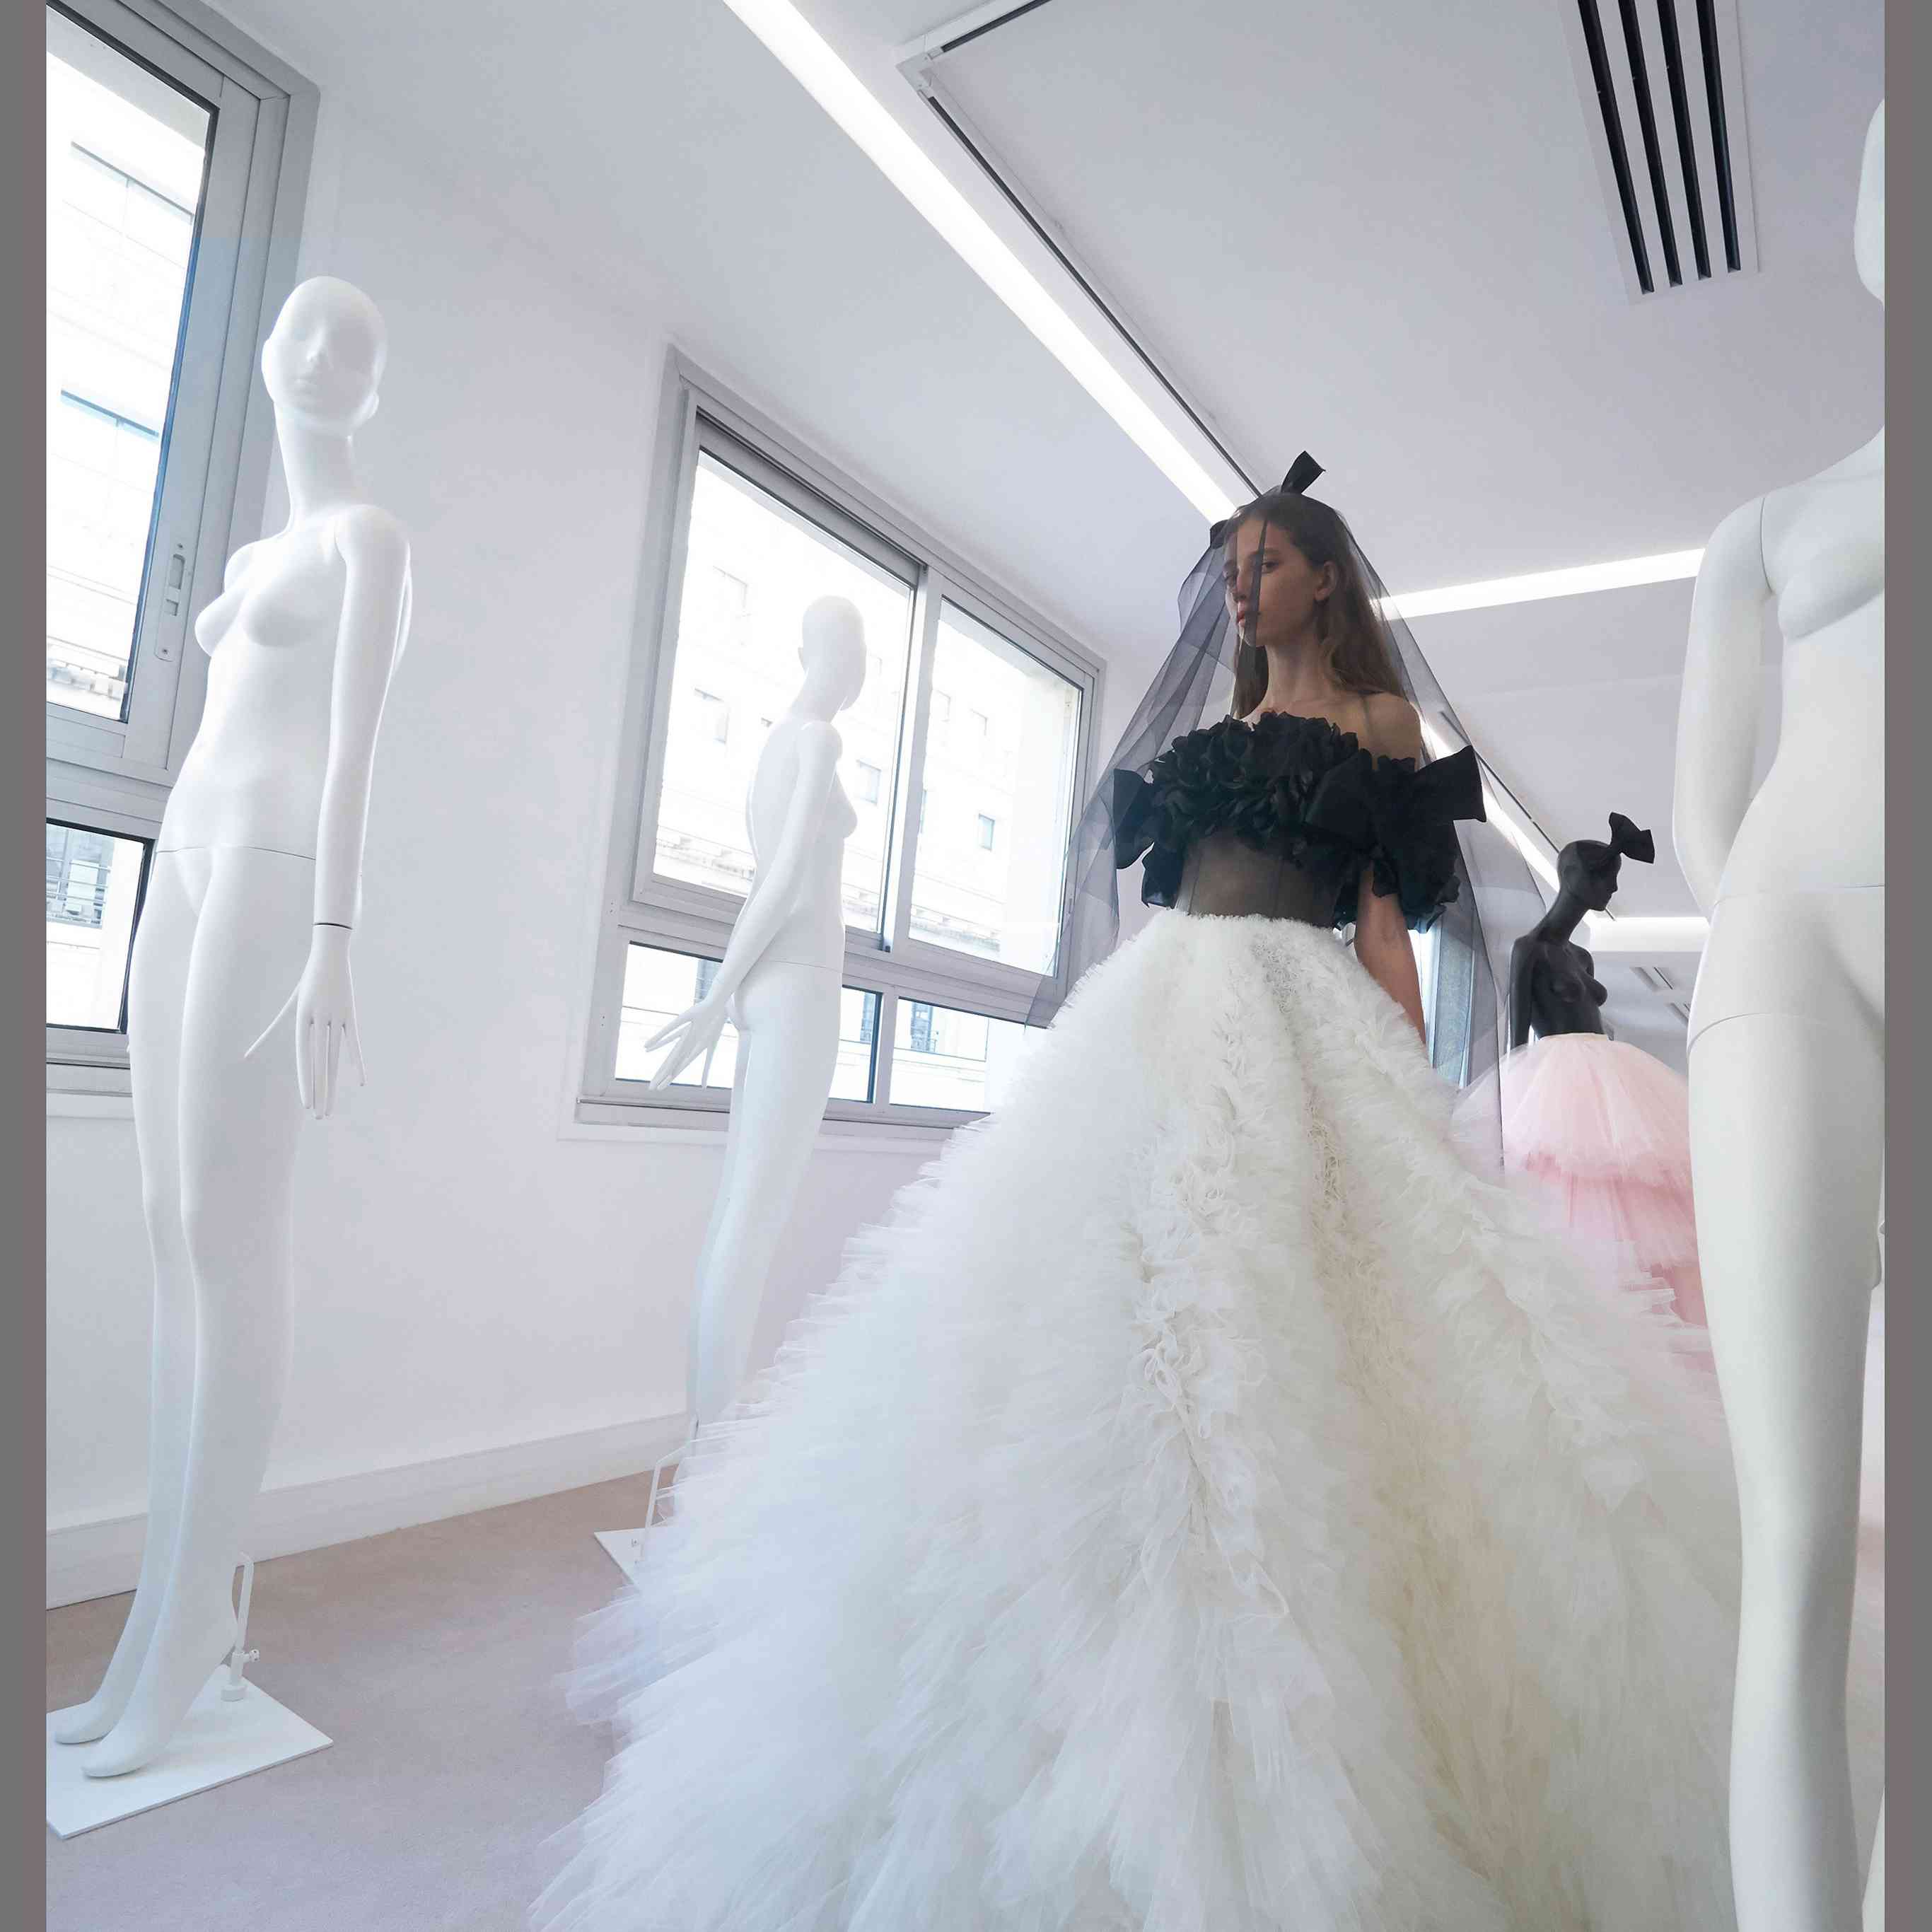 39 Wedding Dresses From Couture Fashion Week Every Bride To Be Needs To See